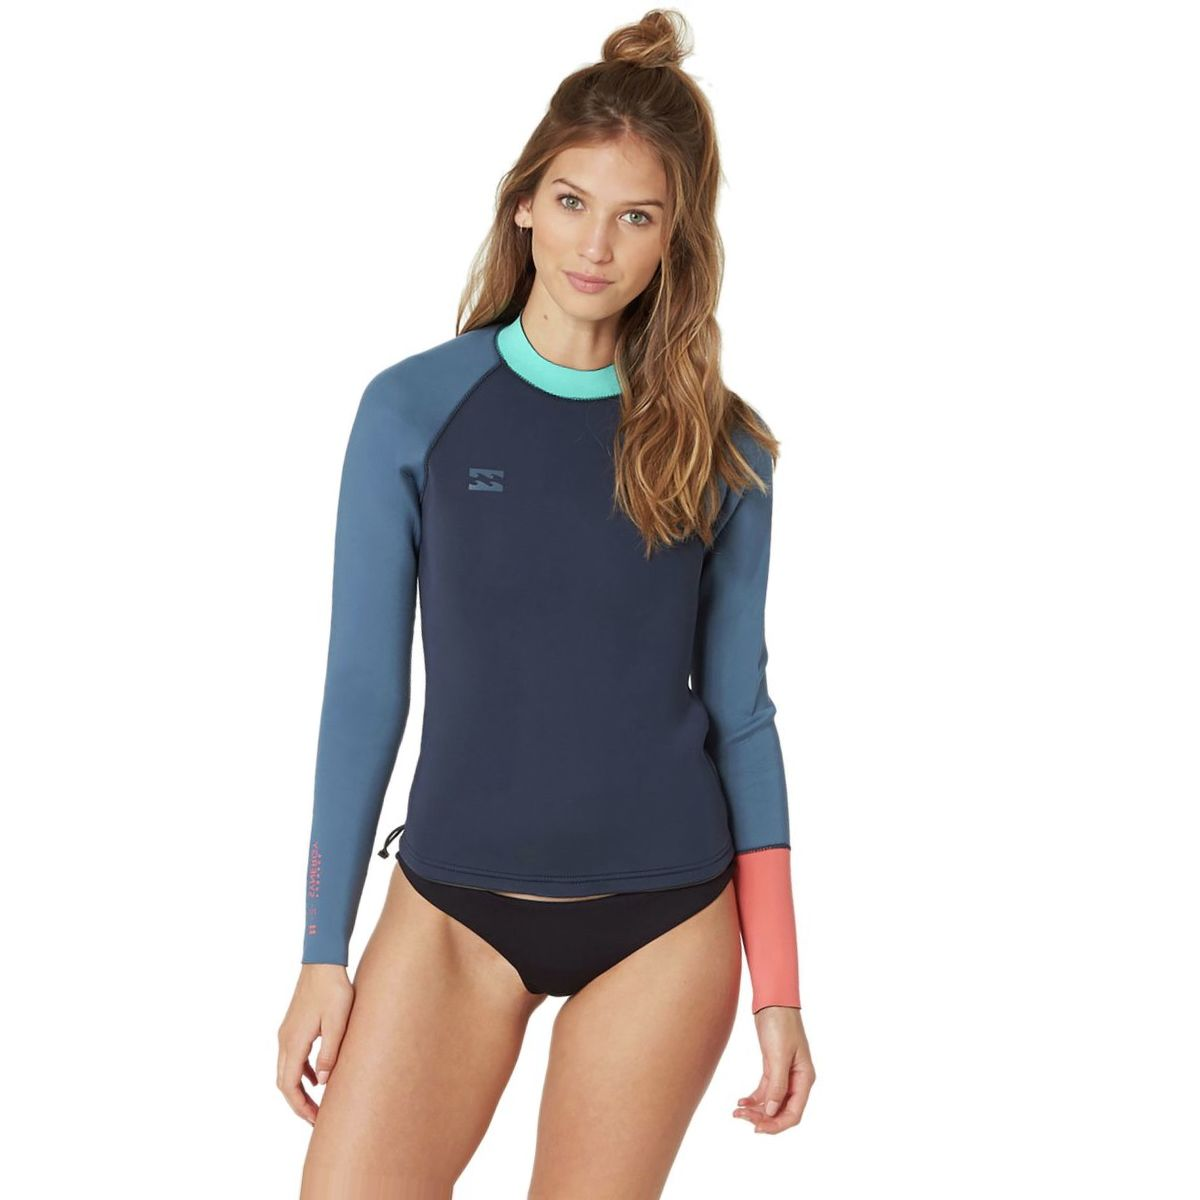 Billabong 2mm Synergy GBS Long-Sleeve Jacket - Women's